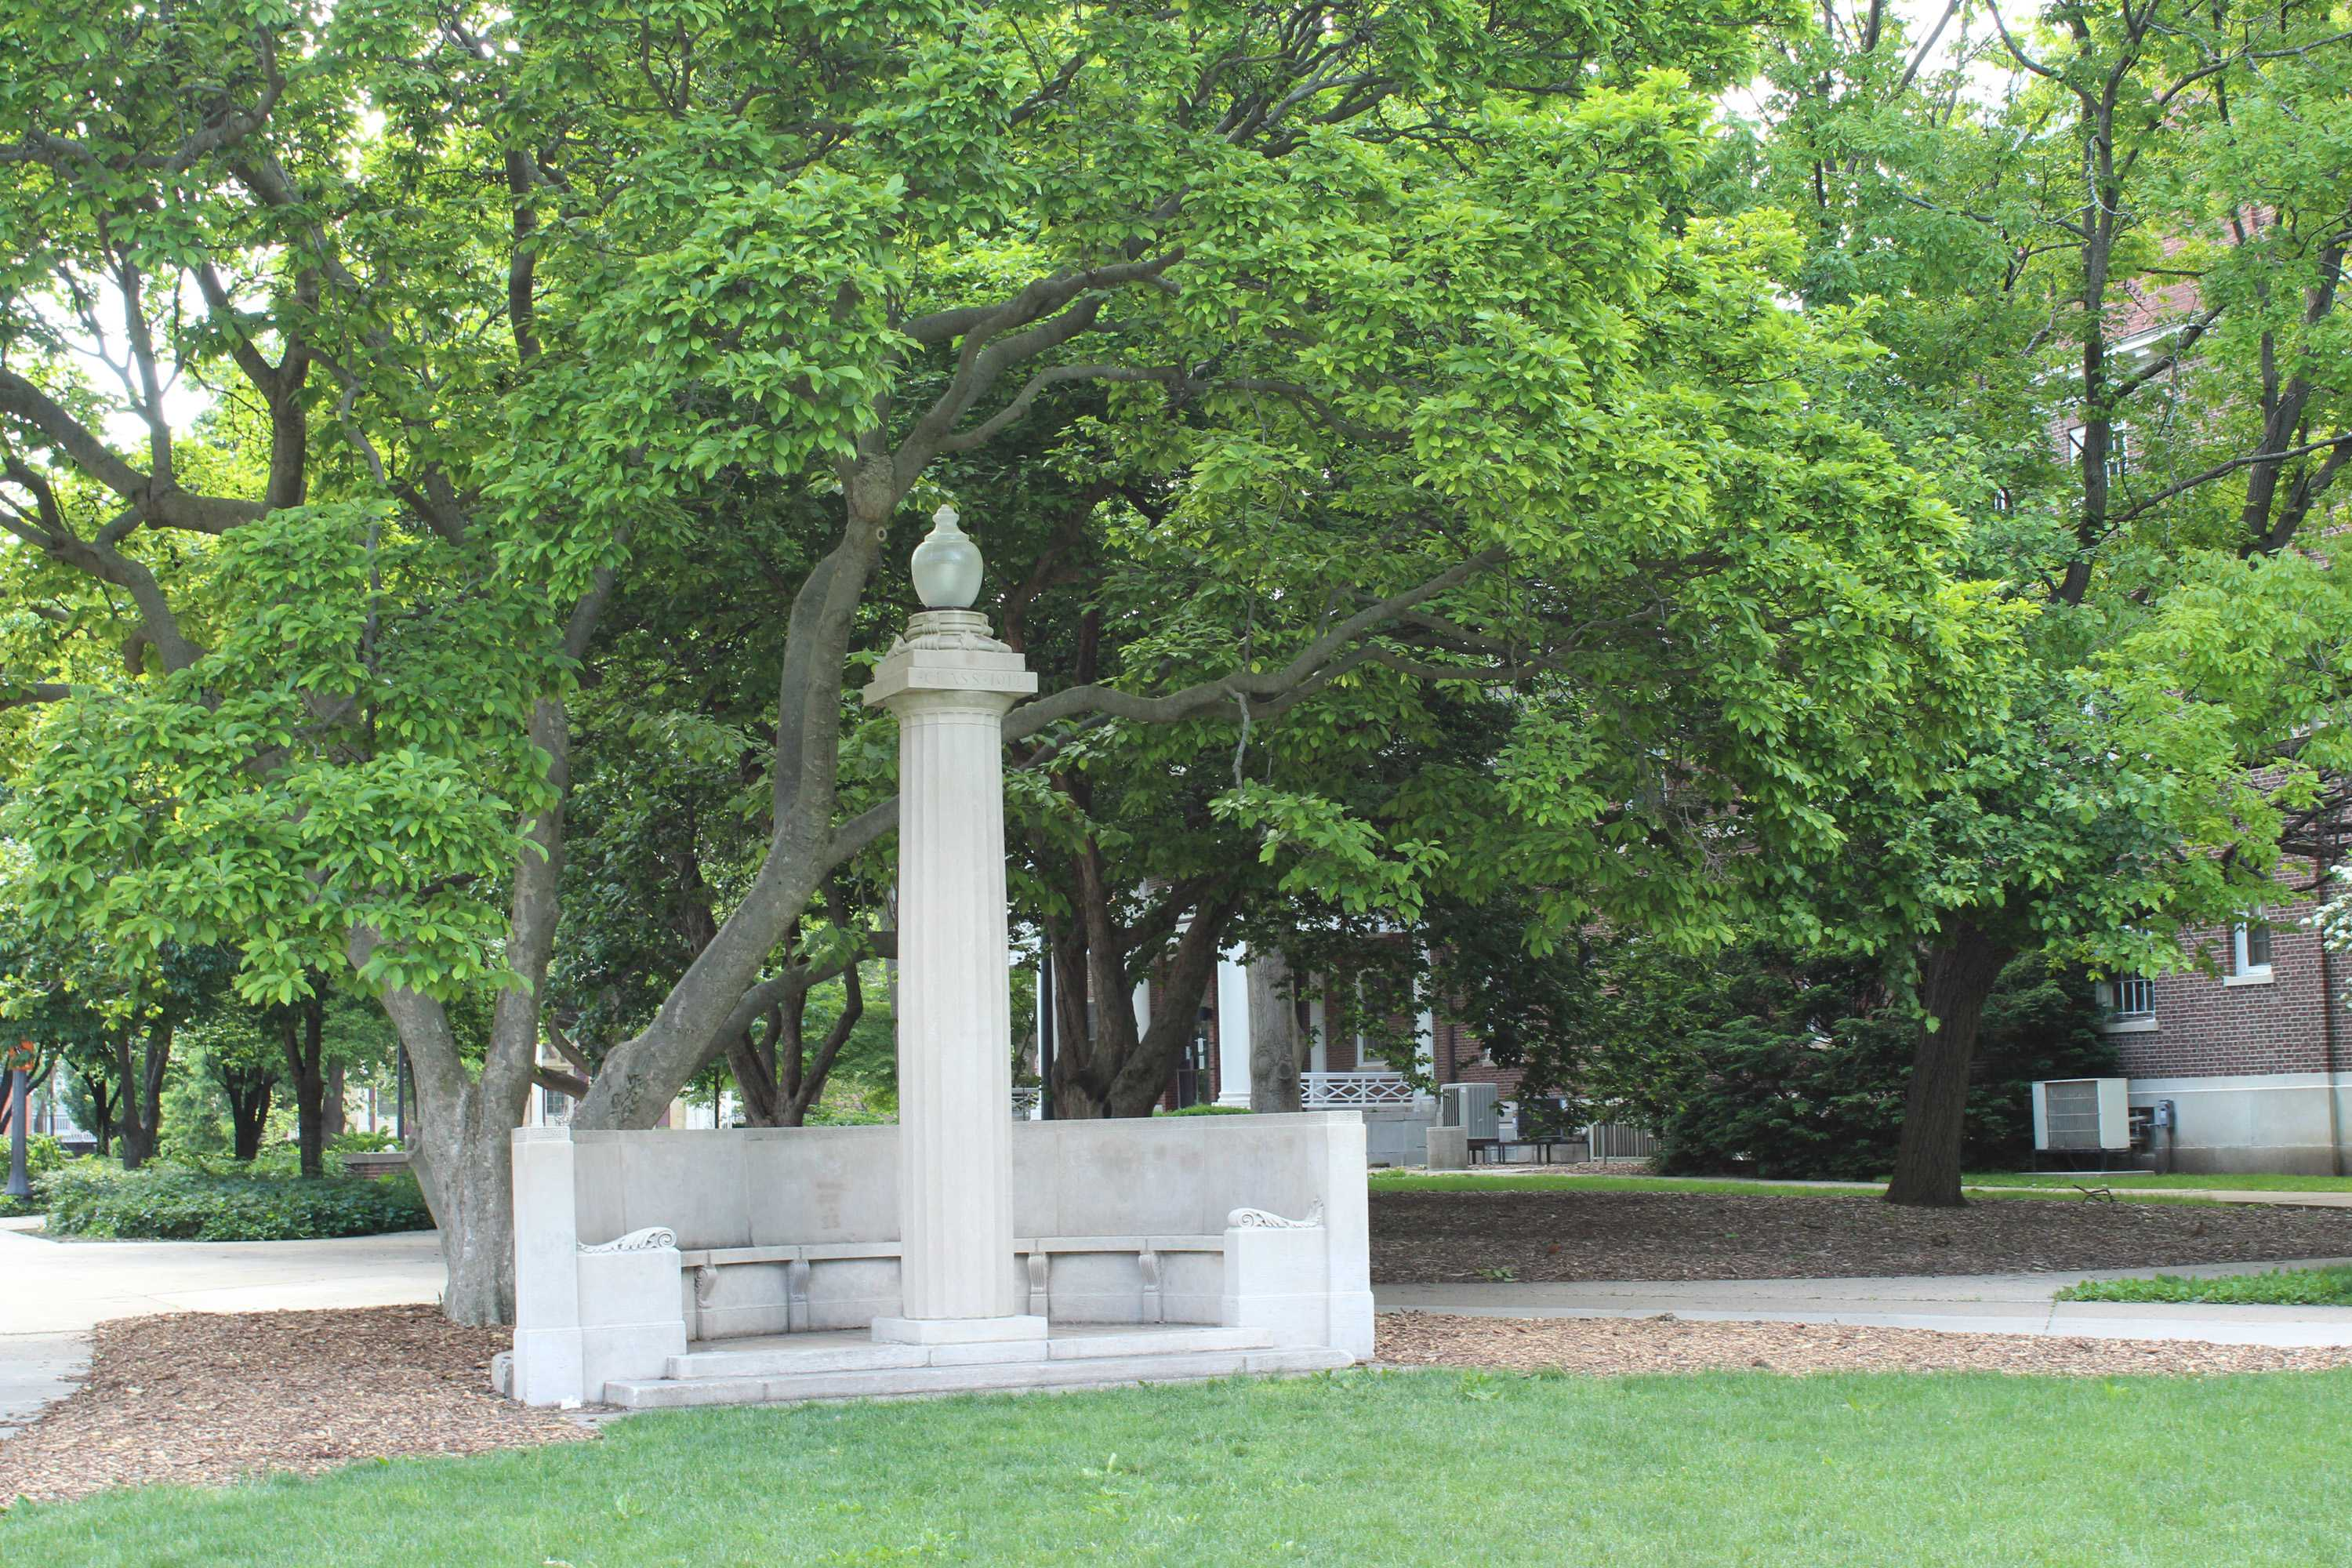 The Eternal Flame, located on the western side of the Main Quad between Lincoln Hall and the English Building. The Eternal Flame is just one of many campus landmarks with an interesting backstory.